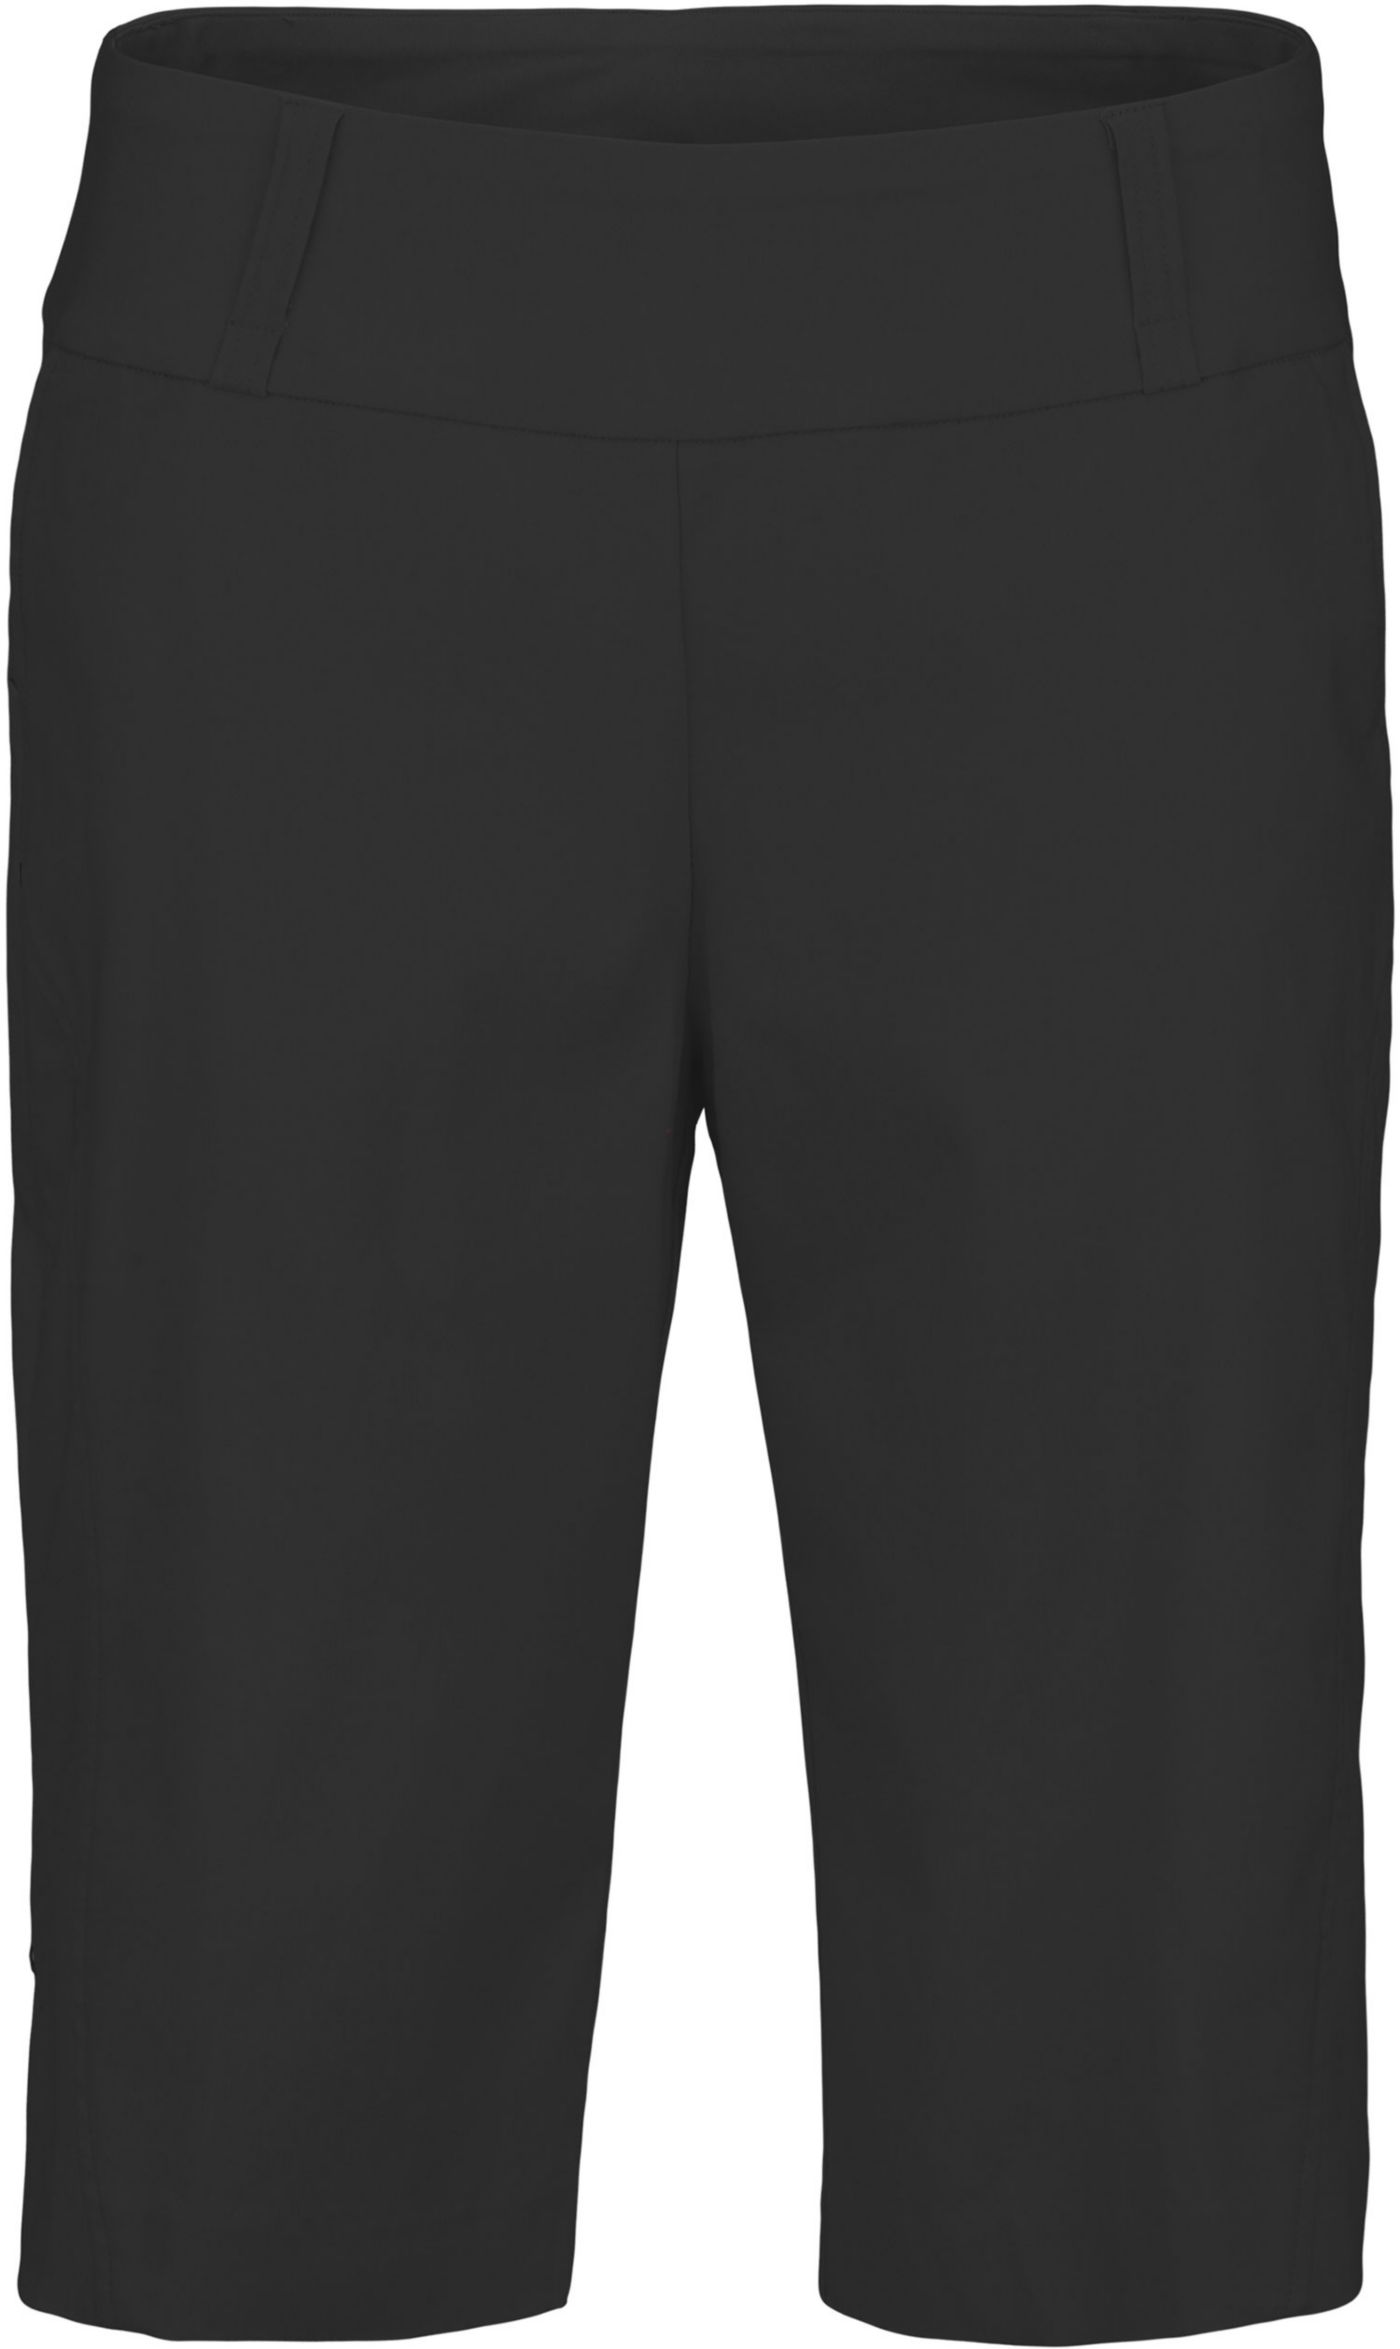 Bette & Court Women's Smooth Fit Golf Shorts